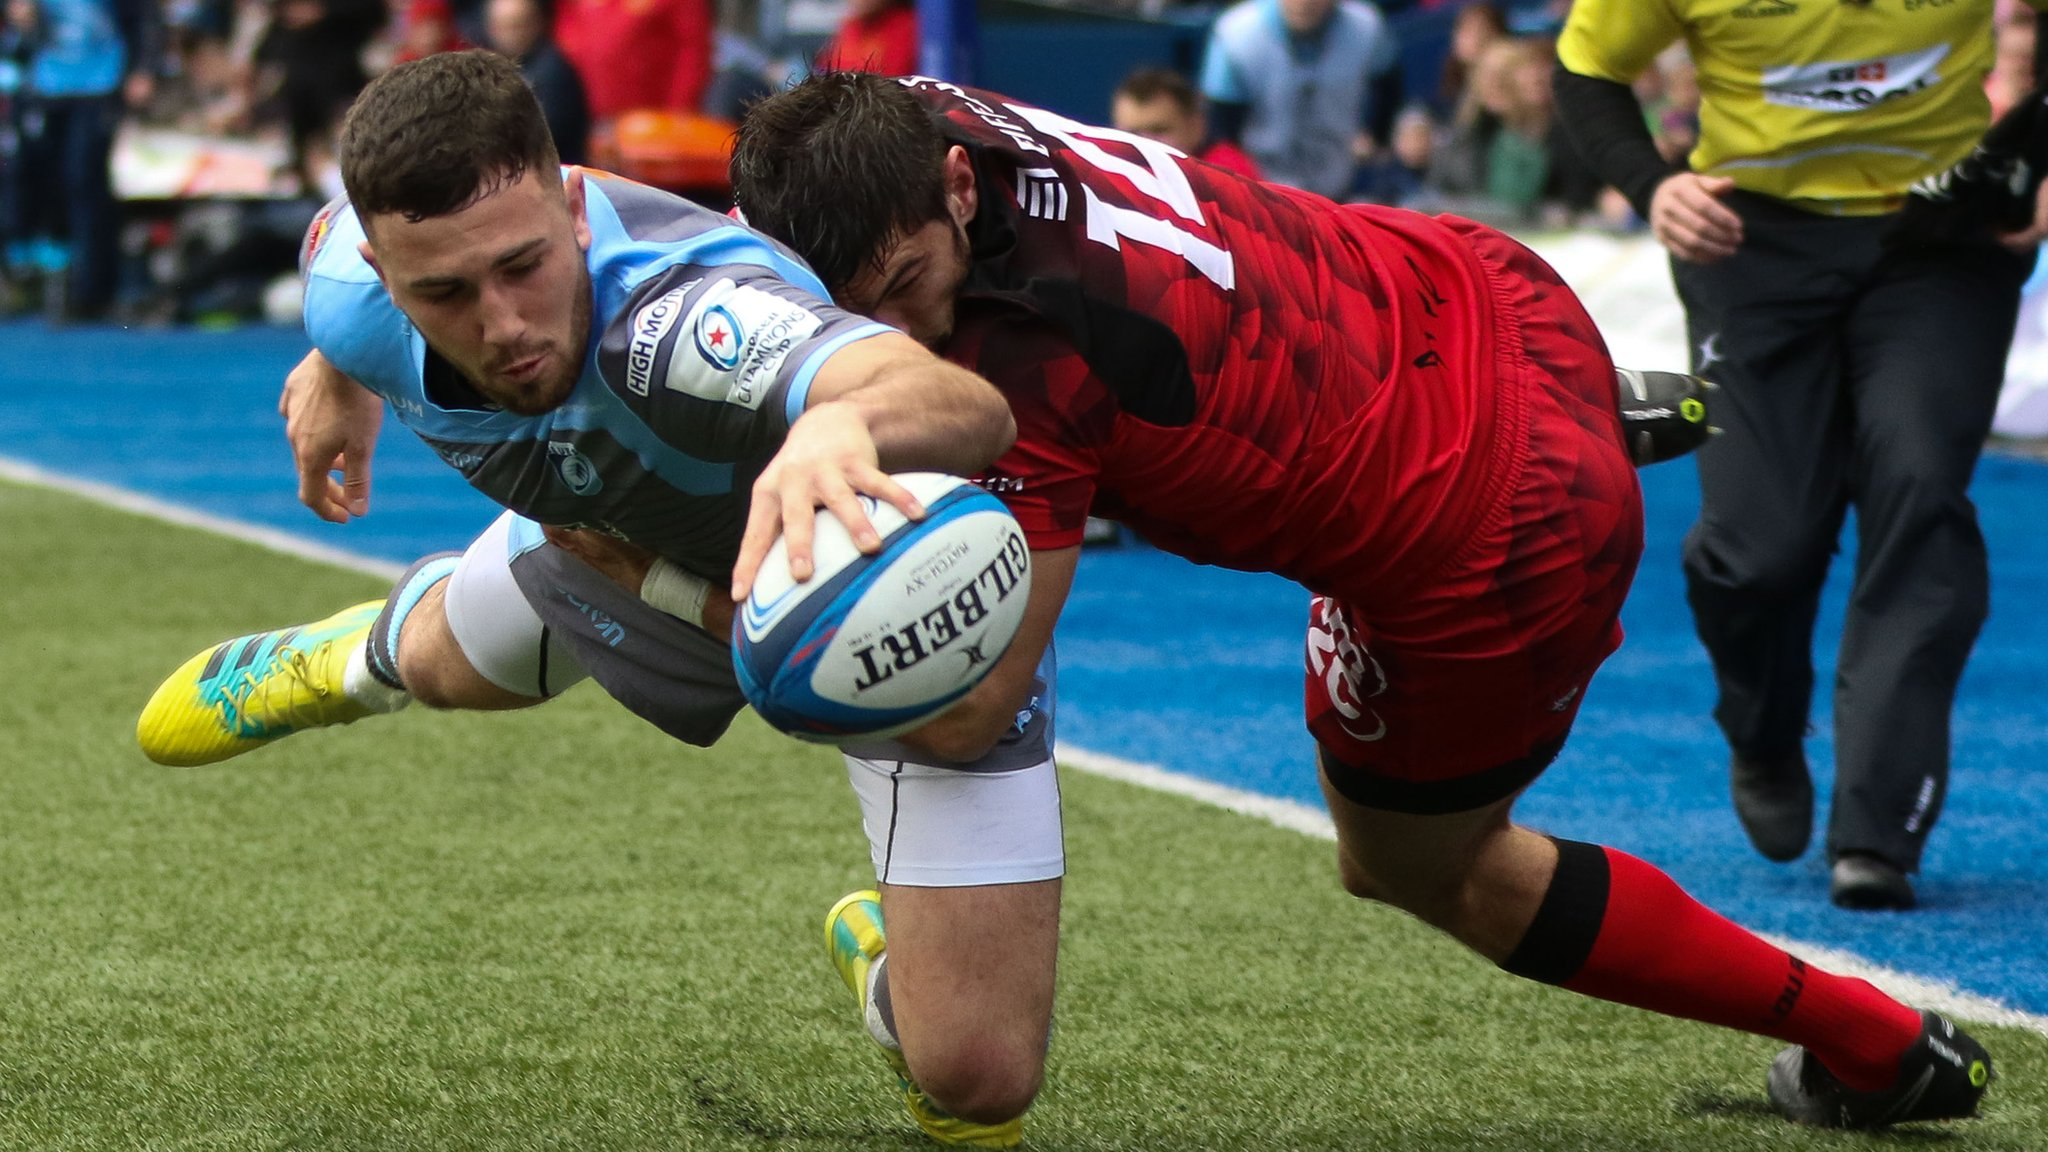 European Champions Cup: Cardiff Blues 33-14 Lyon